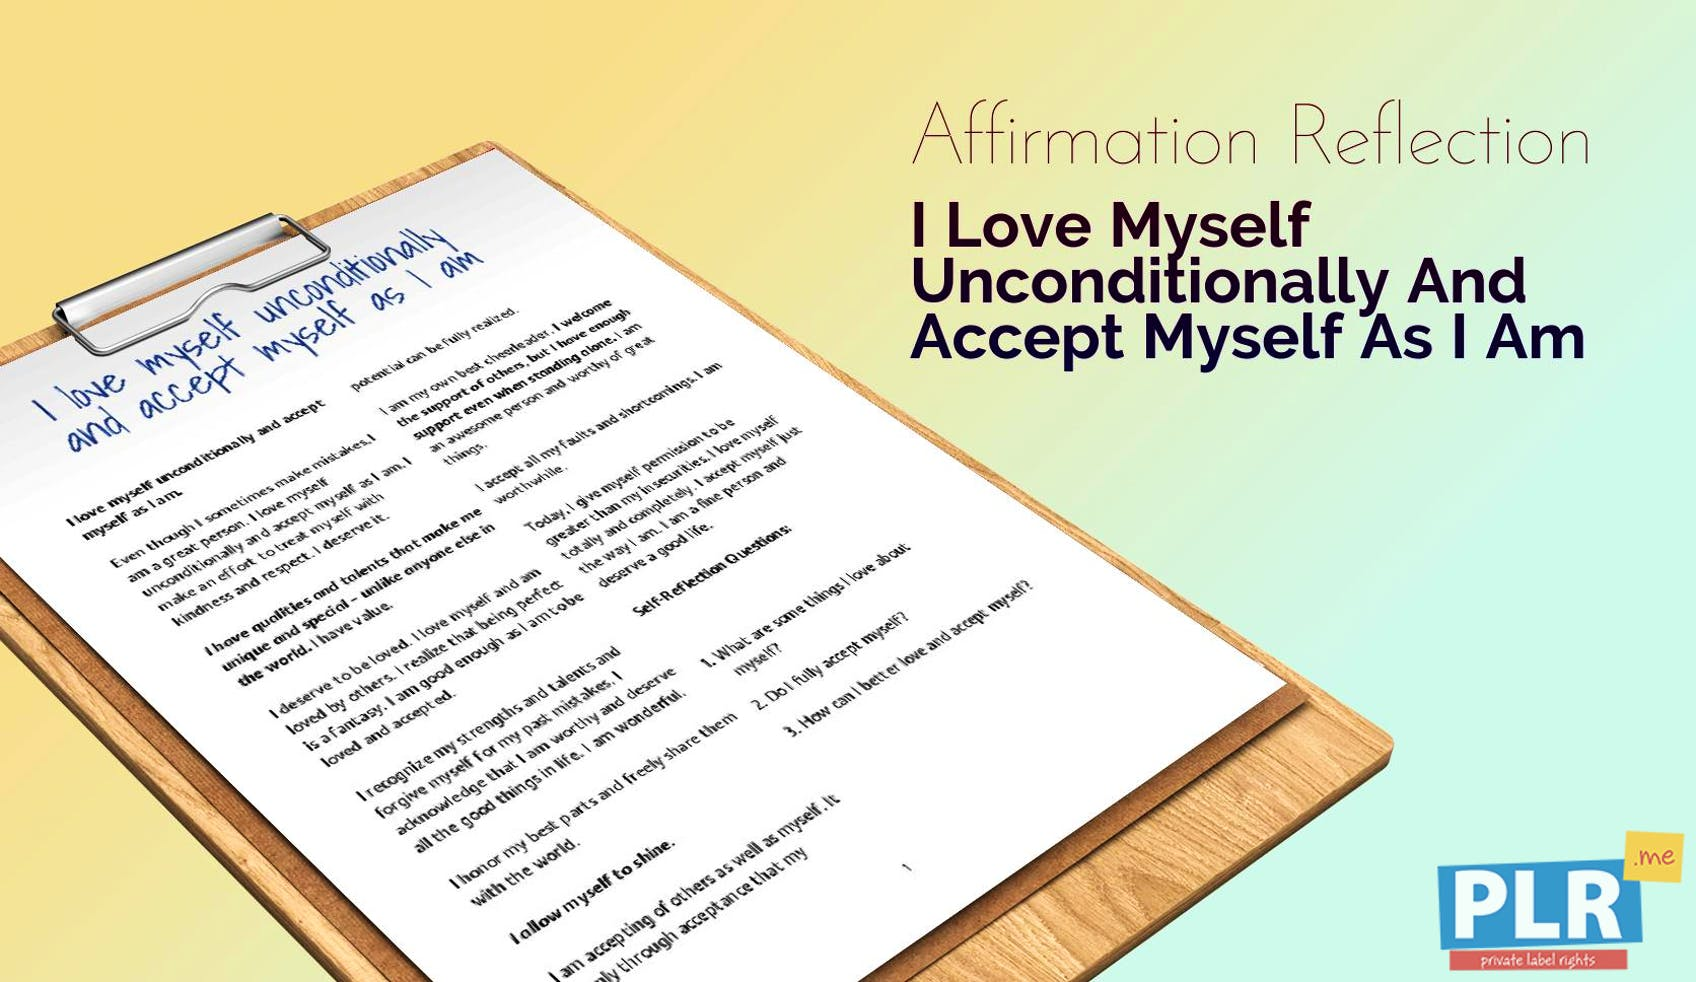 I Love Myself Unconditionally And Accept Myself As I Am